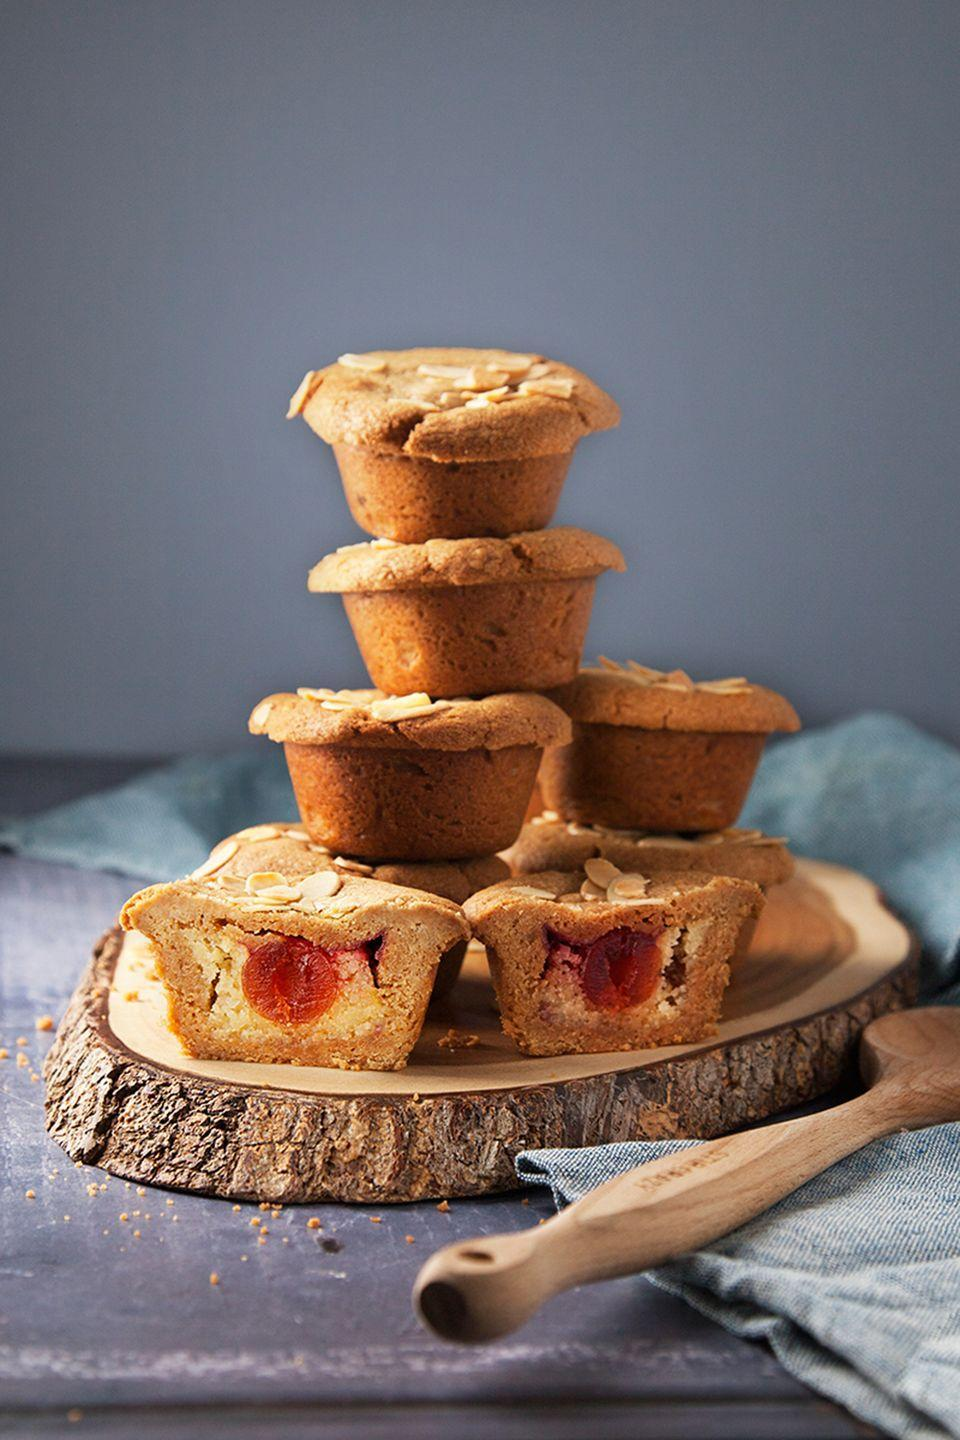 """<p>Oh how we love cherry bakewell tarts, and we've stuffed these cookie cups with the flavours for the perfect treat.</p><p><strong>Recipe: <a href=""""https://www.goodhousekeeping.com/uk/food/recipes/a26585882/cherry-bakewell-cookie-cups/"""" rel=""""nofollow noopener"""" target=""""_blank"""" data-ylk=""""slk:Cherry bakewell cookie cups"""" class=""""link rapid-noclick-resp"""">Cherry bakewell cookie cups</a></strong></p>"""